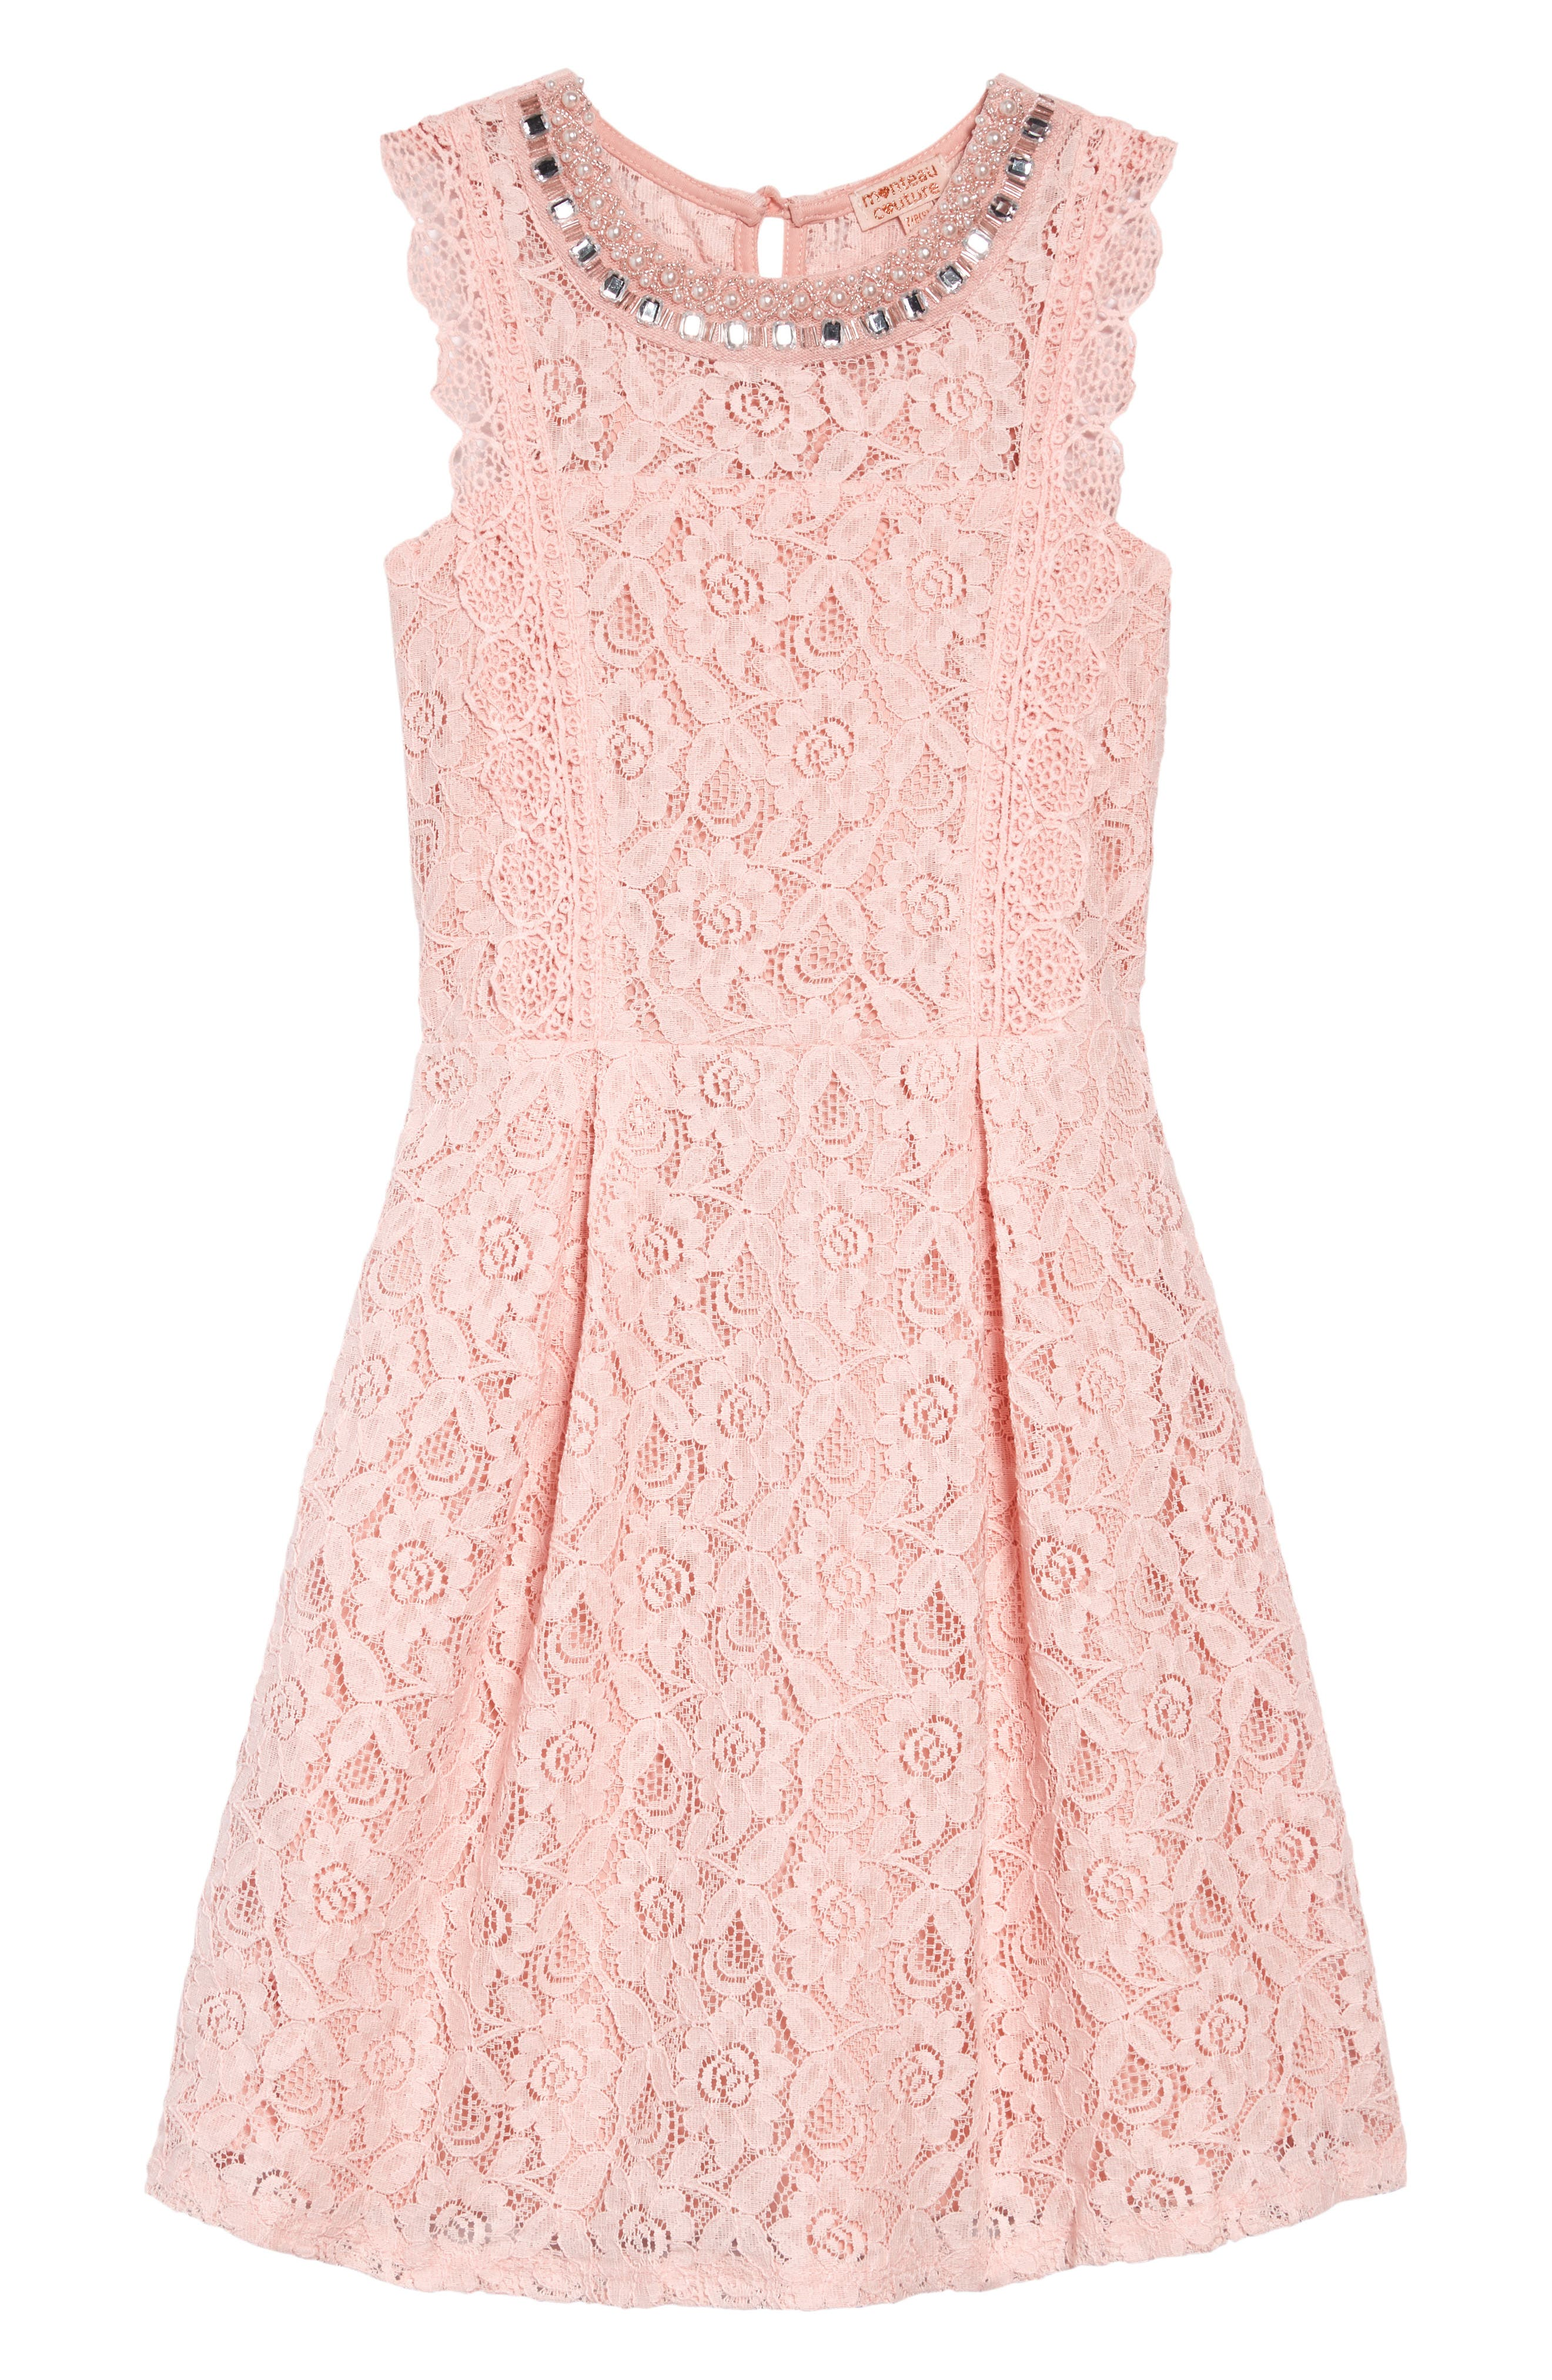 MONTEAU COUTURE Jeweled Neckline Lace Dress, Main, color, PINK